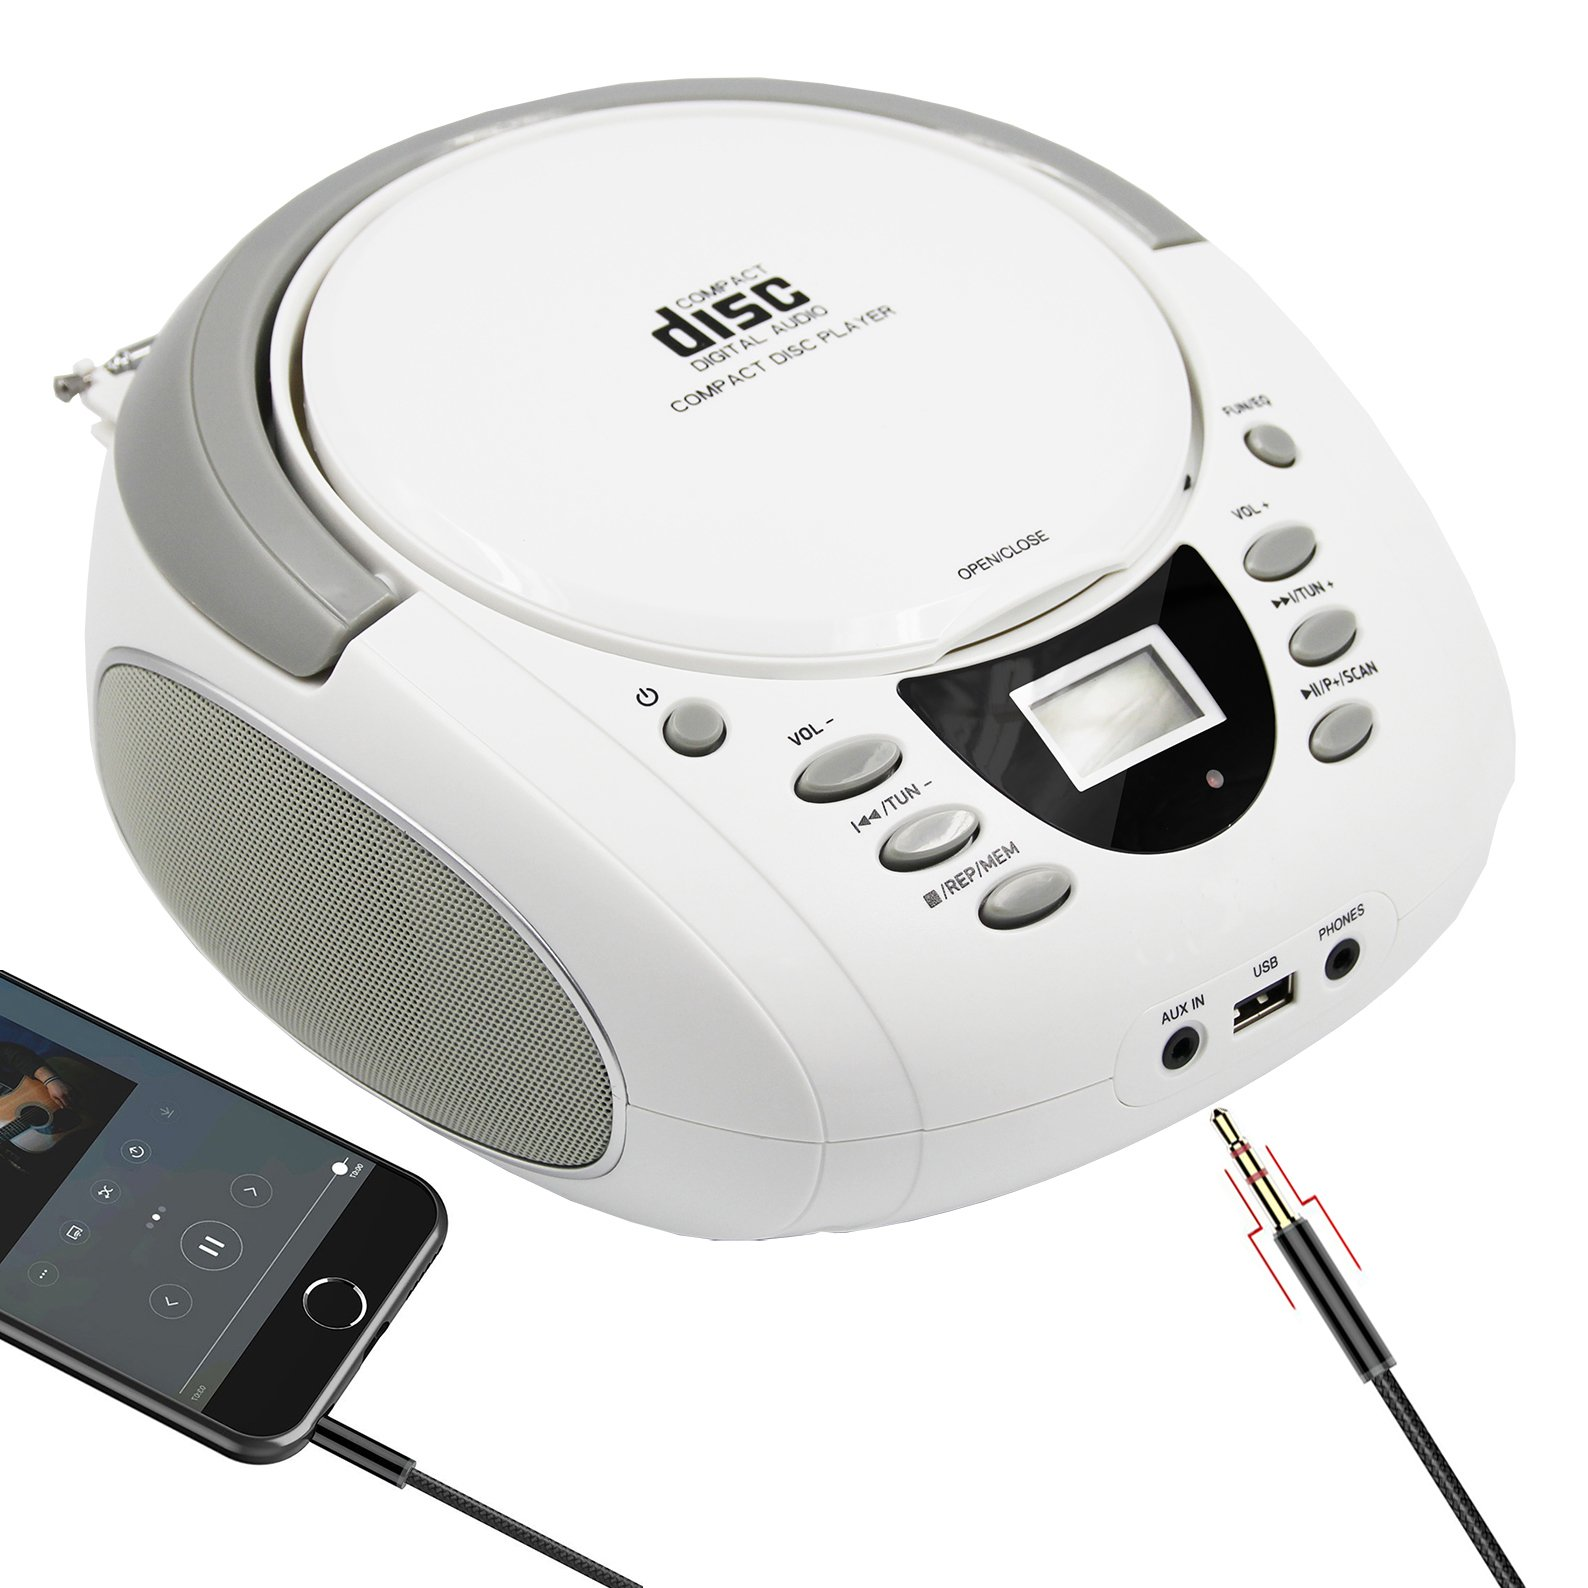 LONPOO Stereo Portable CD Player Boombox with Bluetooth AM/FM Radio and Aux Line-in, LED Display and USB/Headphone Jack (White)